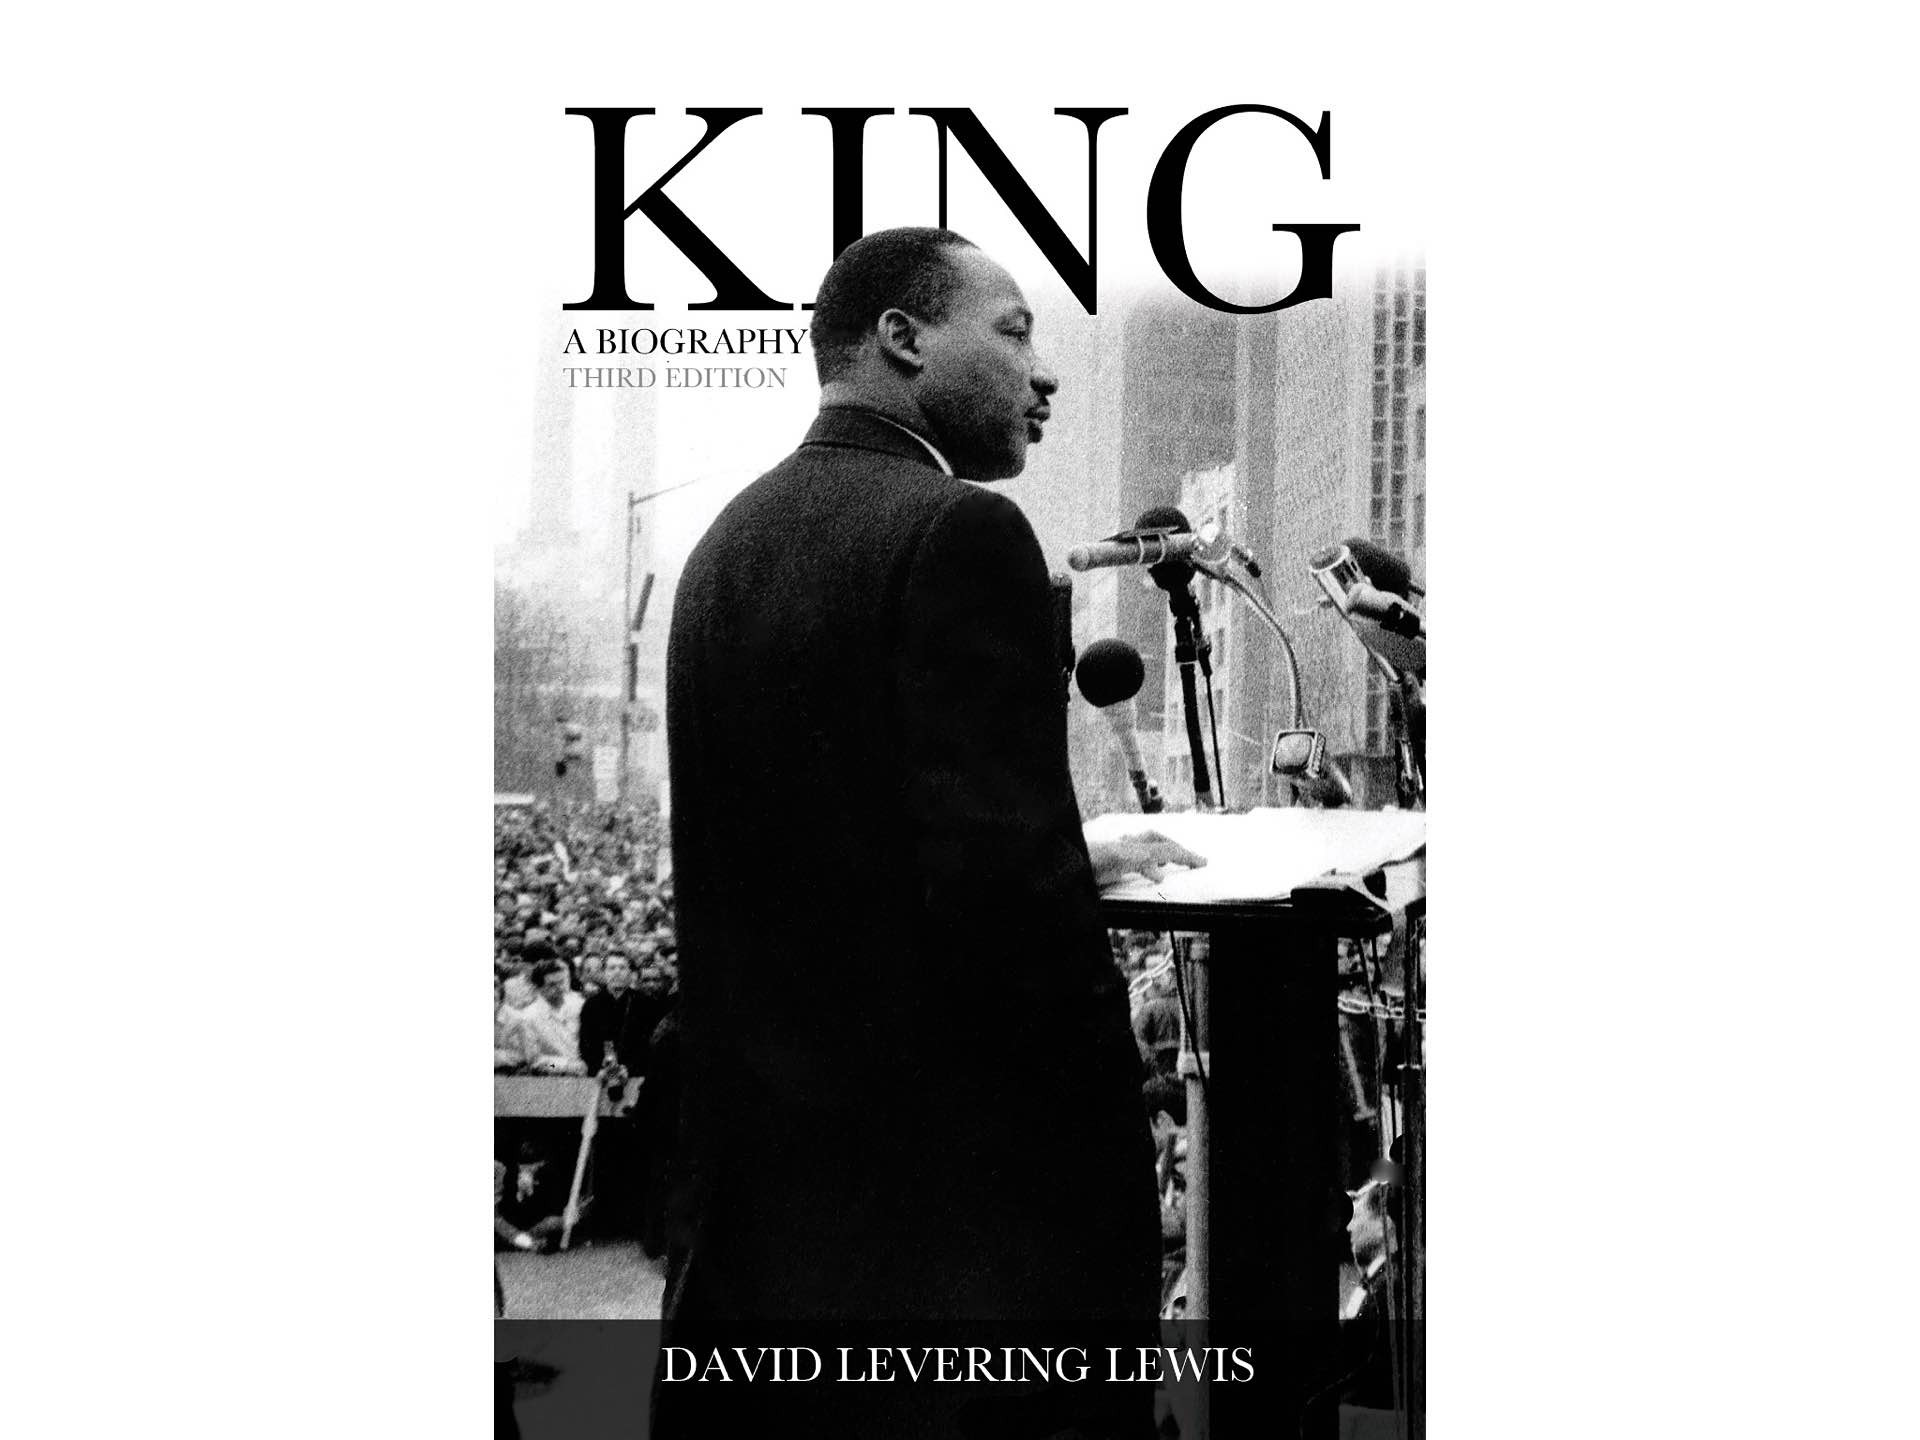 King: A Biography by David Levering Lewis.